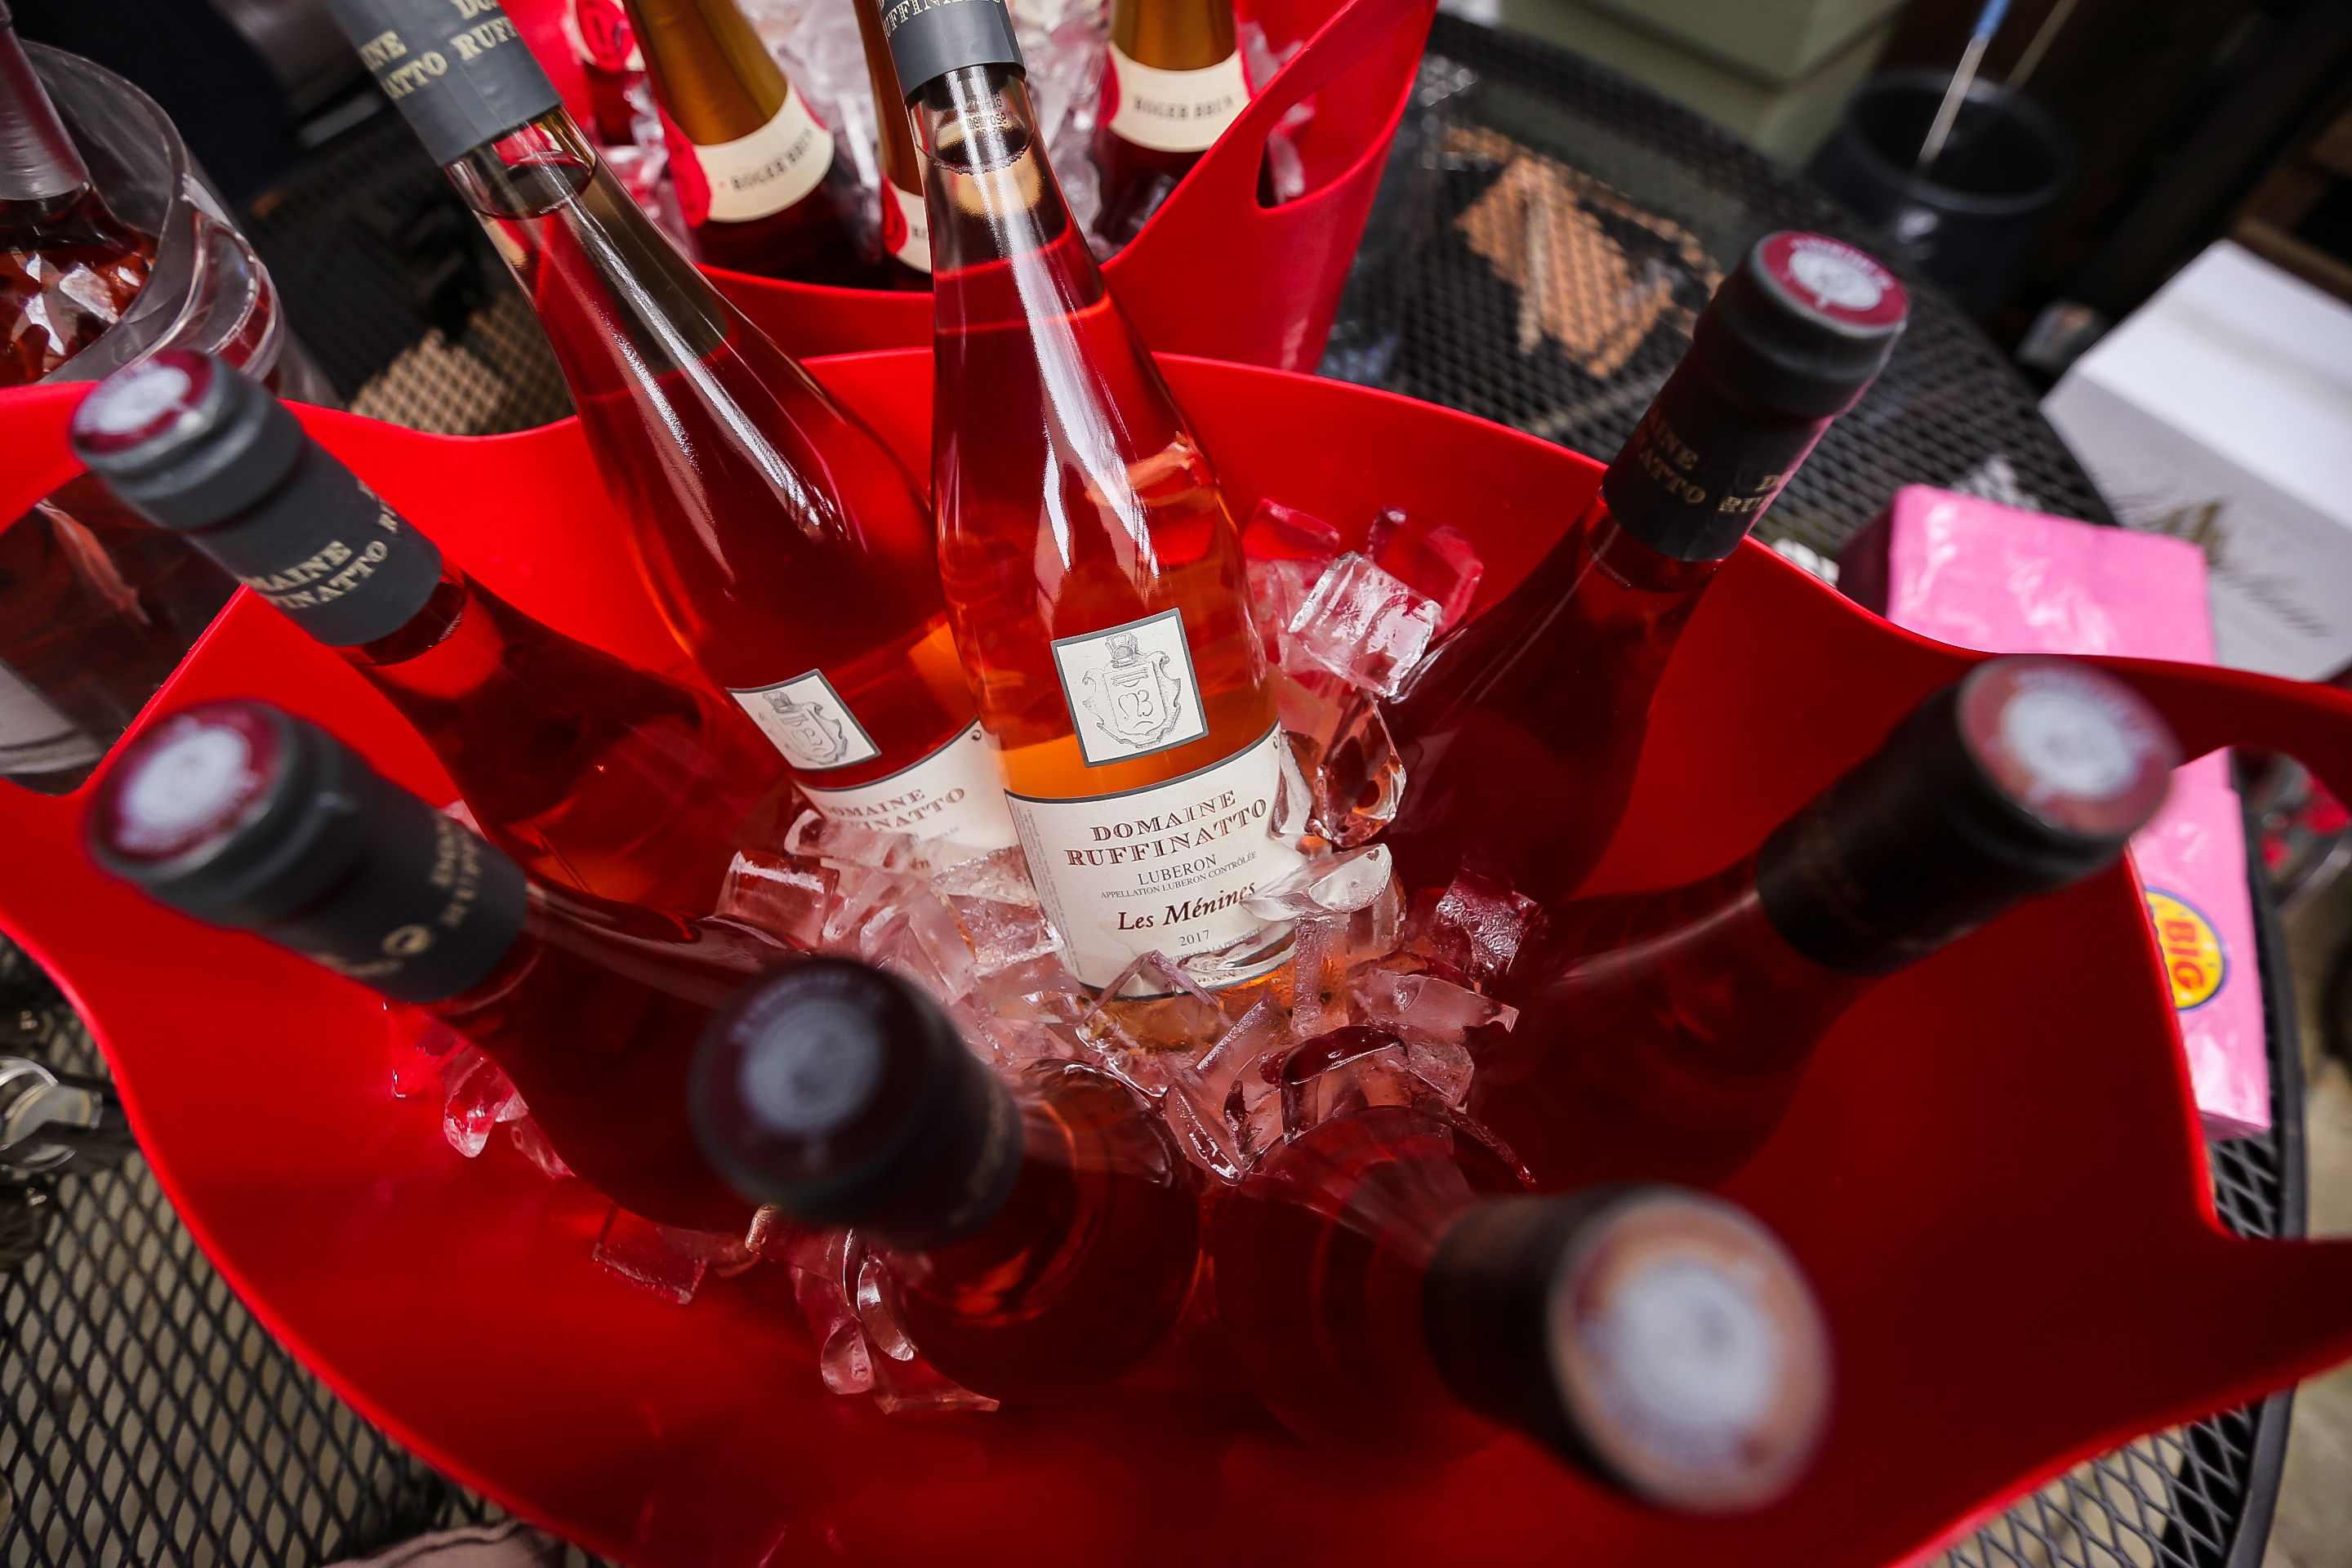 You Know Sometimes You Just Need A Bucket Of Rose Tastes Like Summer Readyforwarmweather Rosesilvousplait Rosealld French Wine Wine Tasting